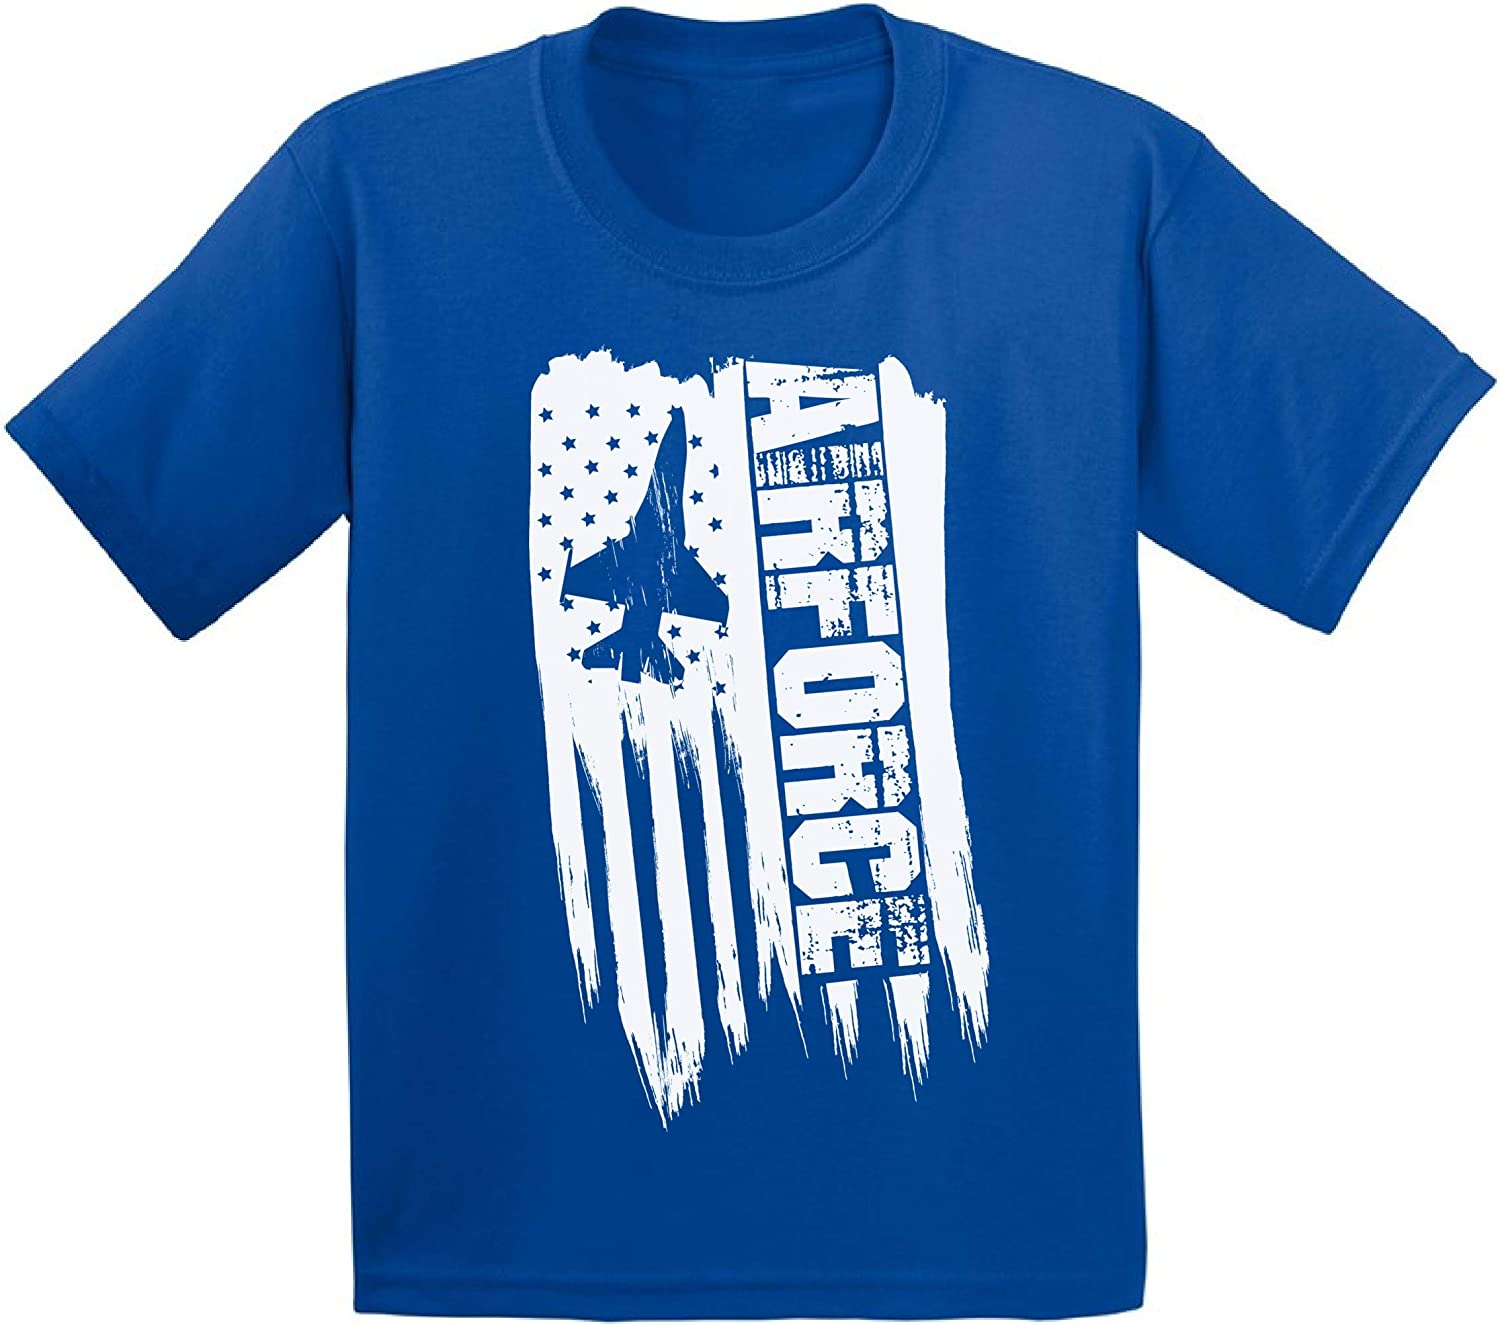 Awkward Styles American Flag Airforce Toddler Shirt USA Airforce T Shirt for Boys Girls